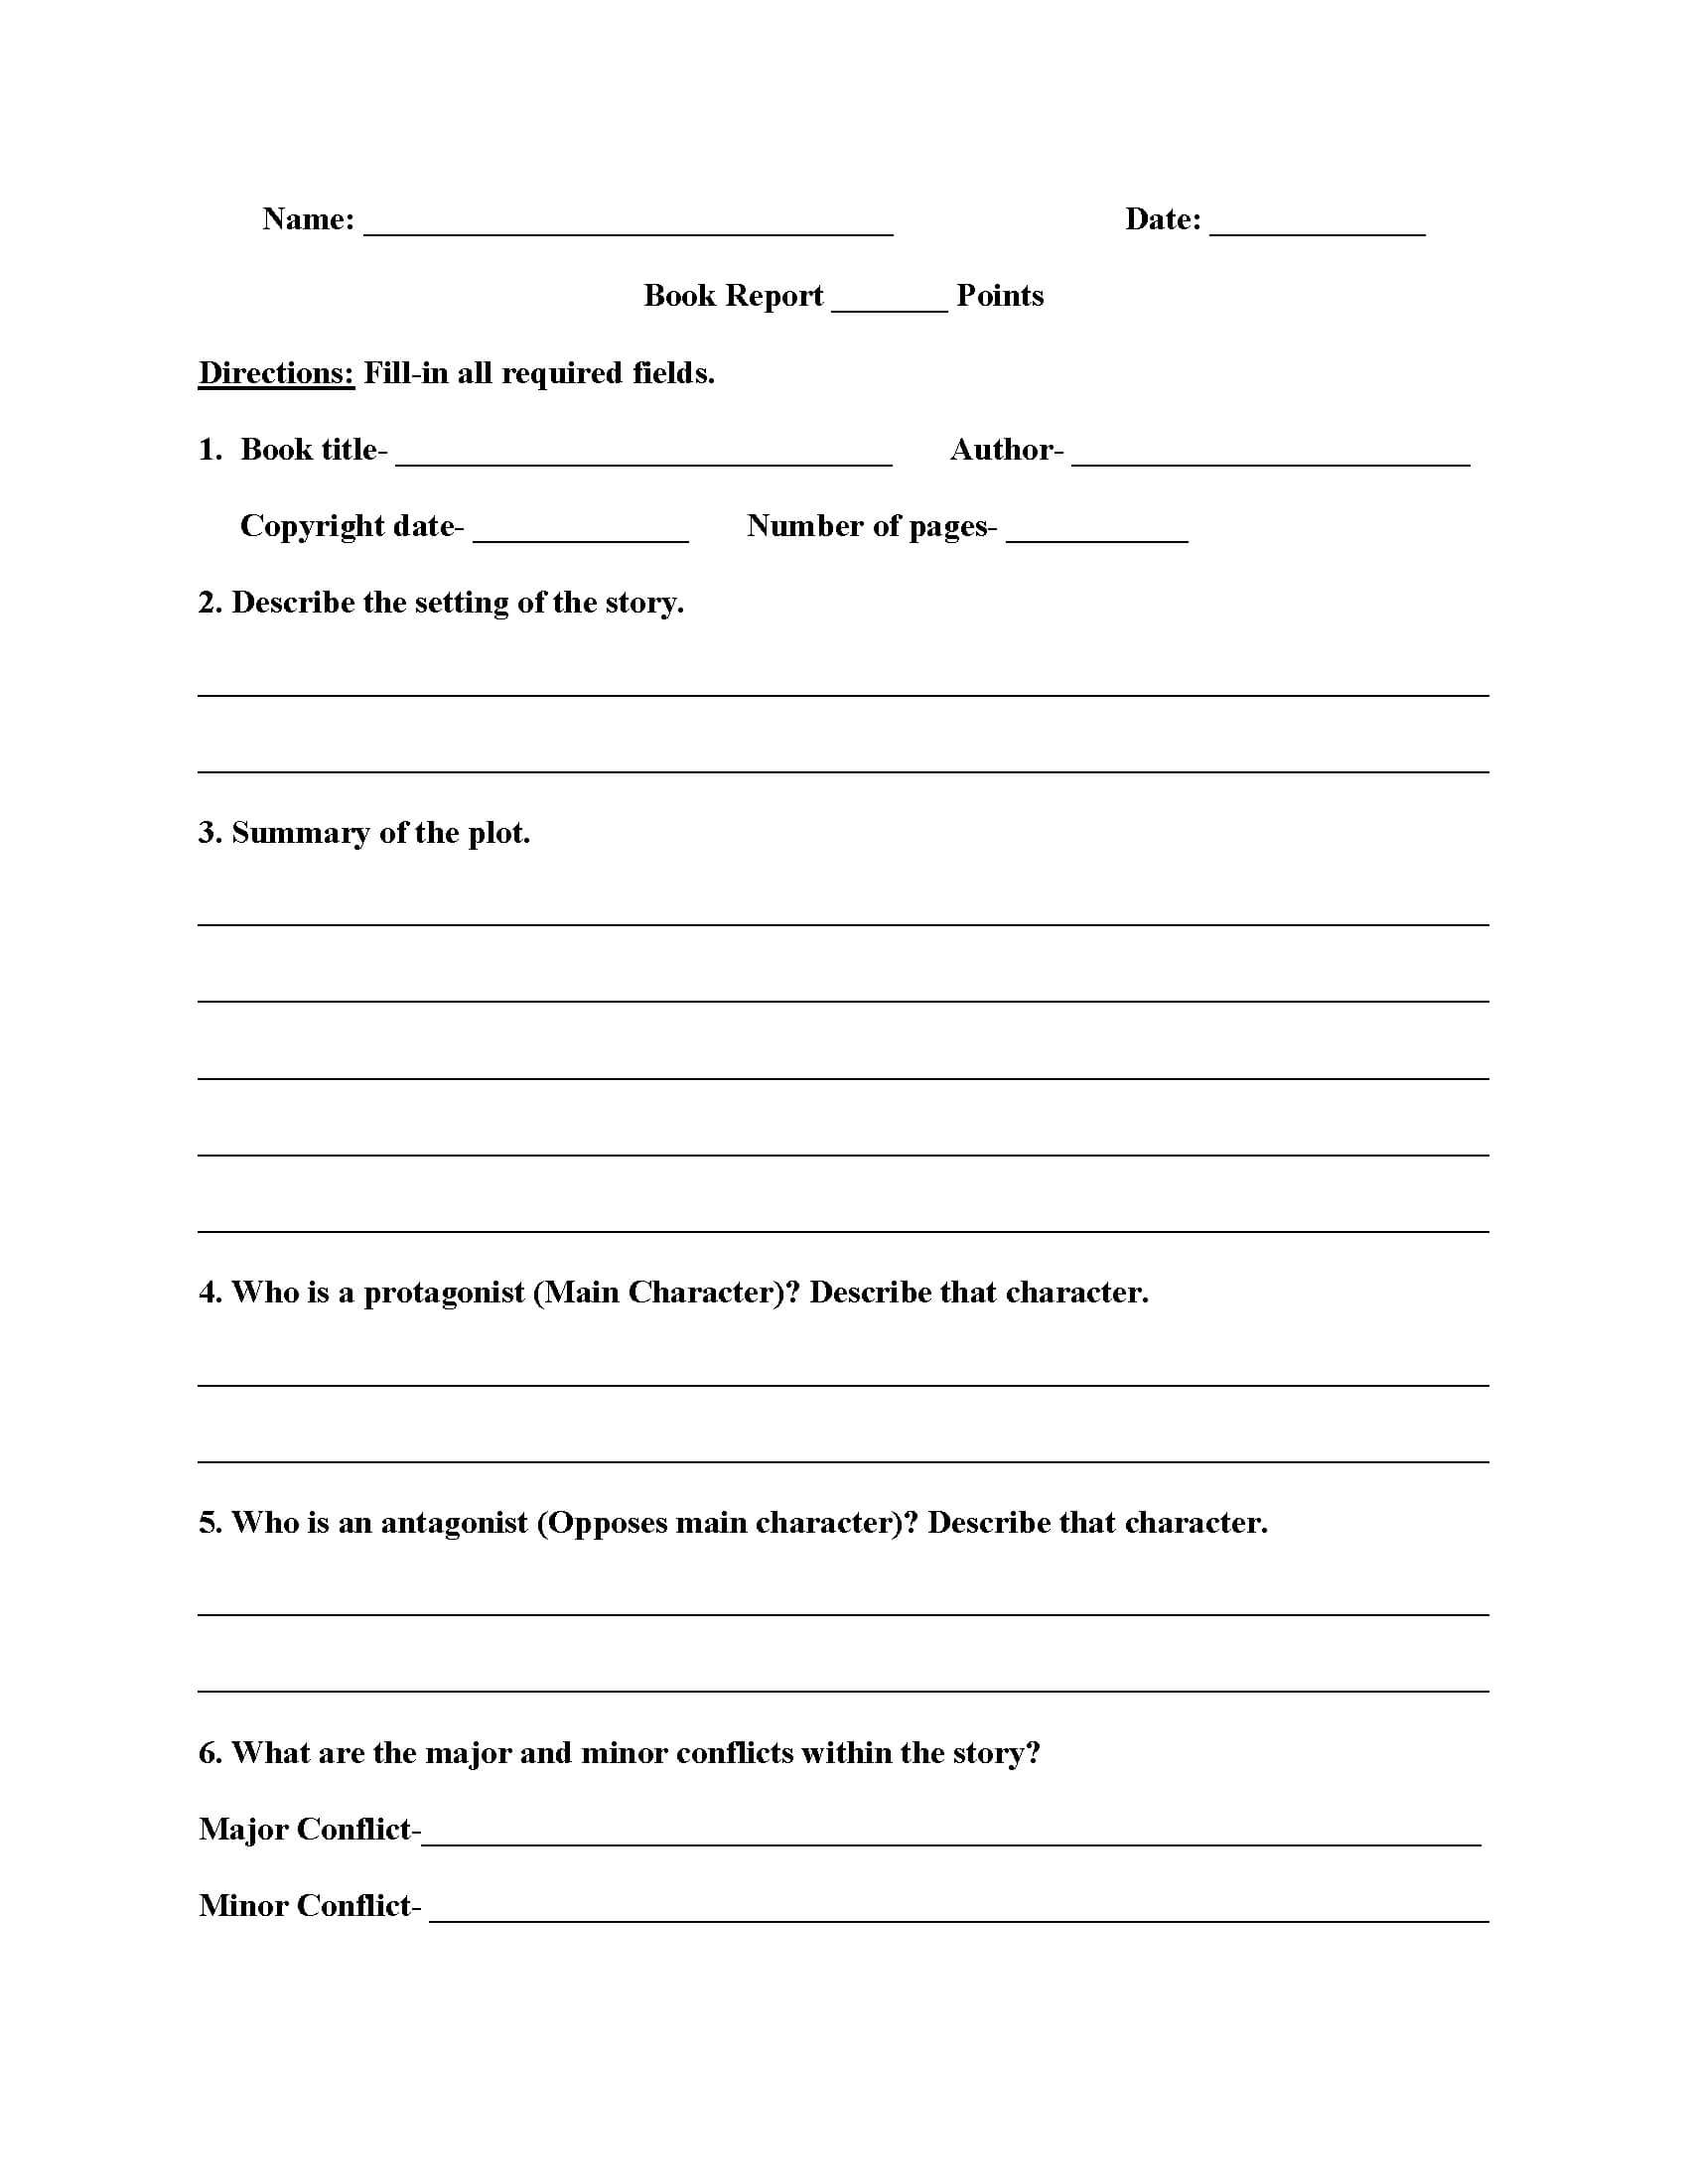 Englishlinx | Book Report Worksheets Intended For Book Report Template 5Th Grade